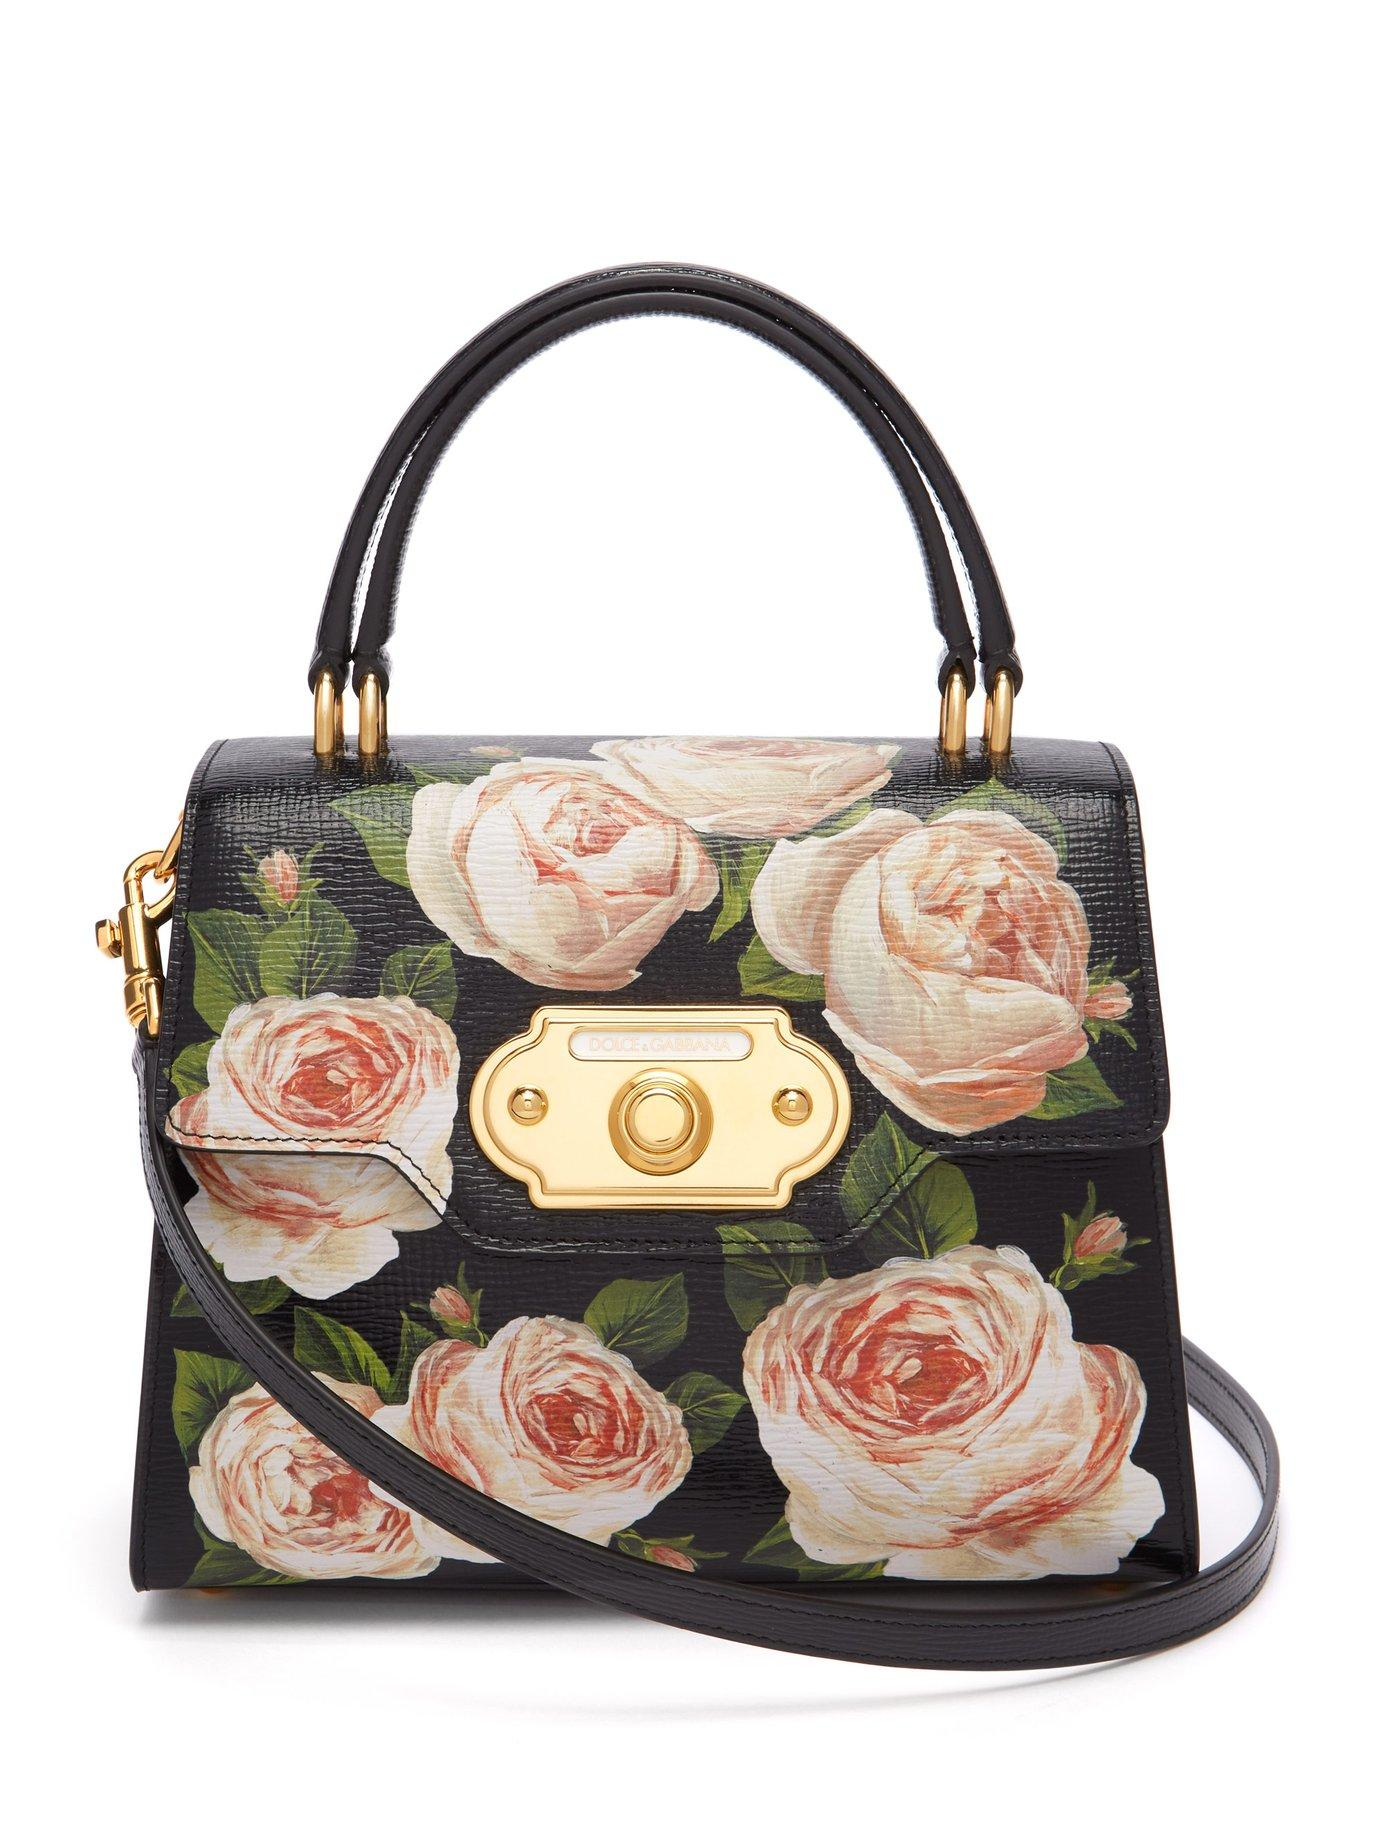 Lyst - Dolce   Gabbana Welcome Rose Printed Grained Leather Bag in Black ffd916e81bde1